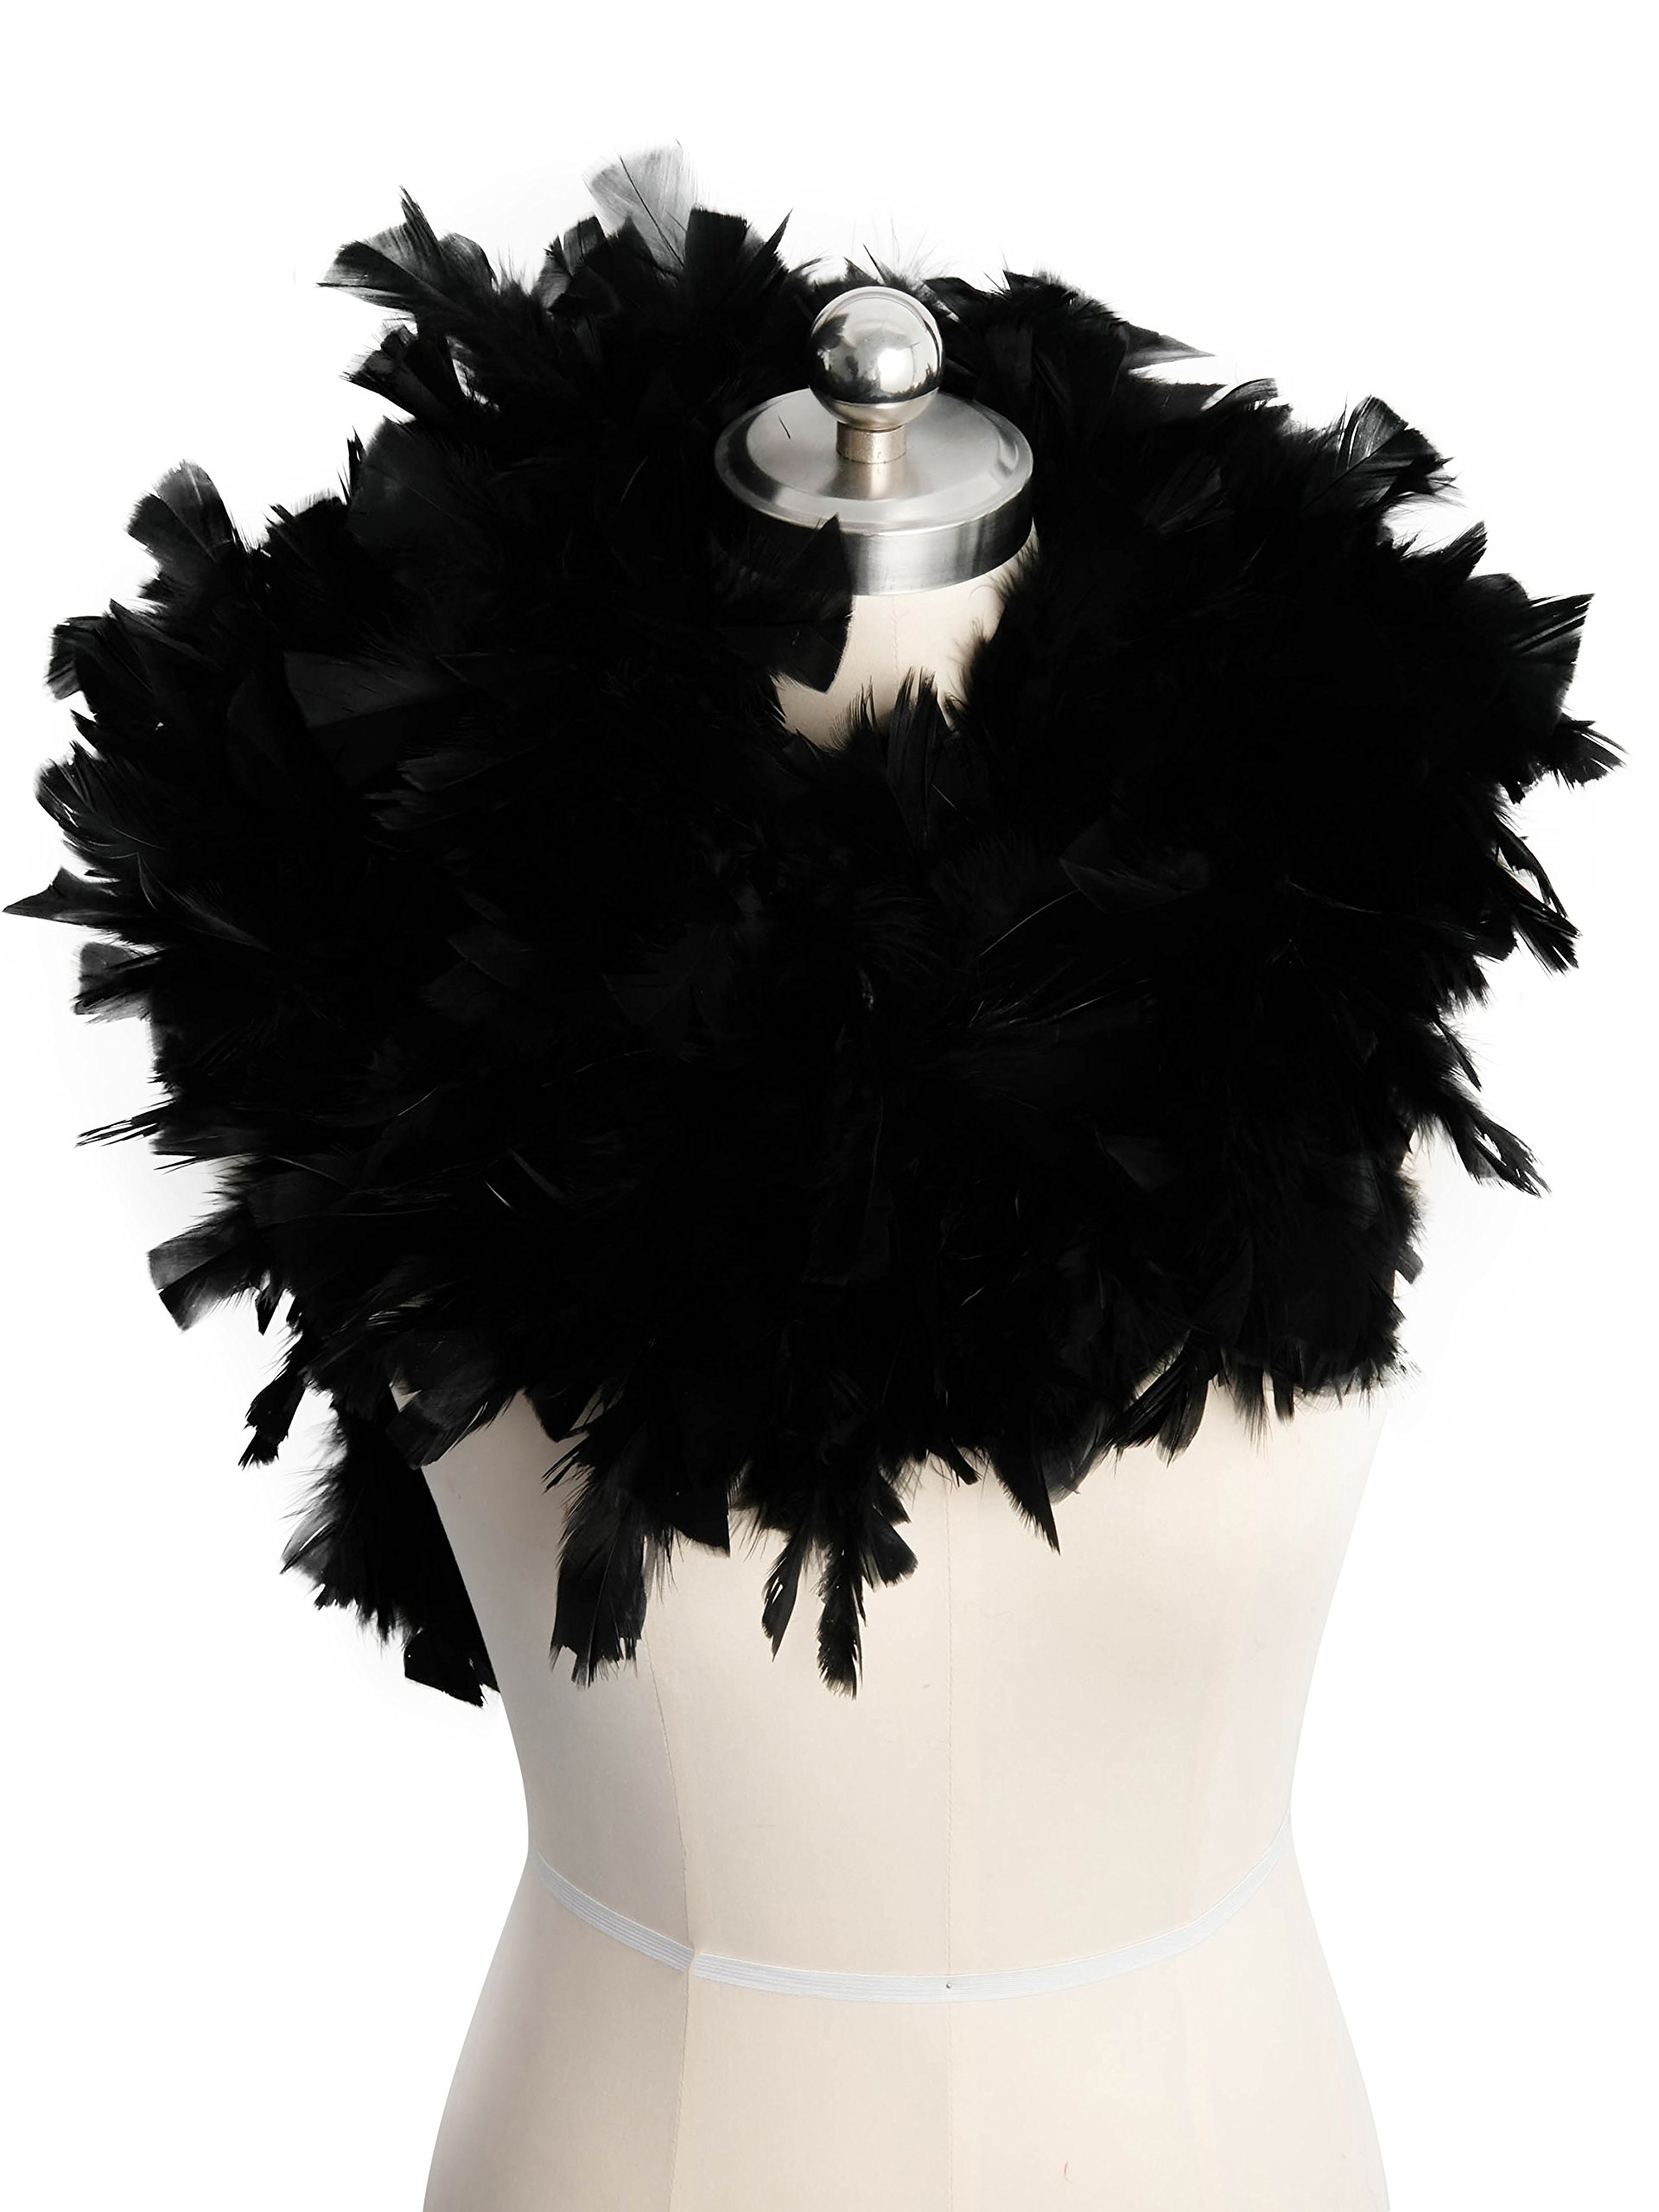 Zivyes 80inch Costume Feather Boas 1920s Flapper Accessories 150g Tea Party Dress up Costume Boa (Black)